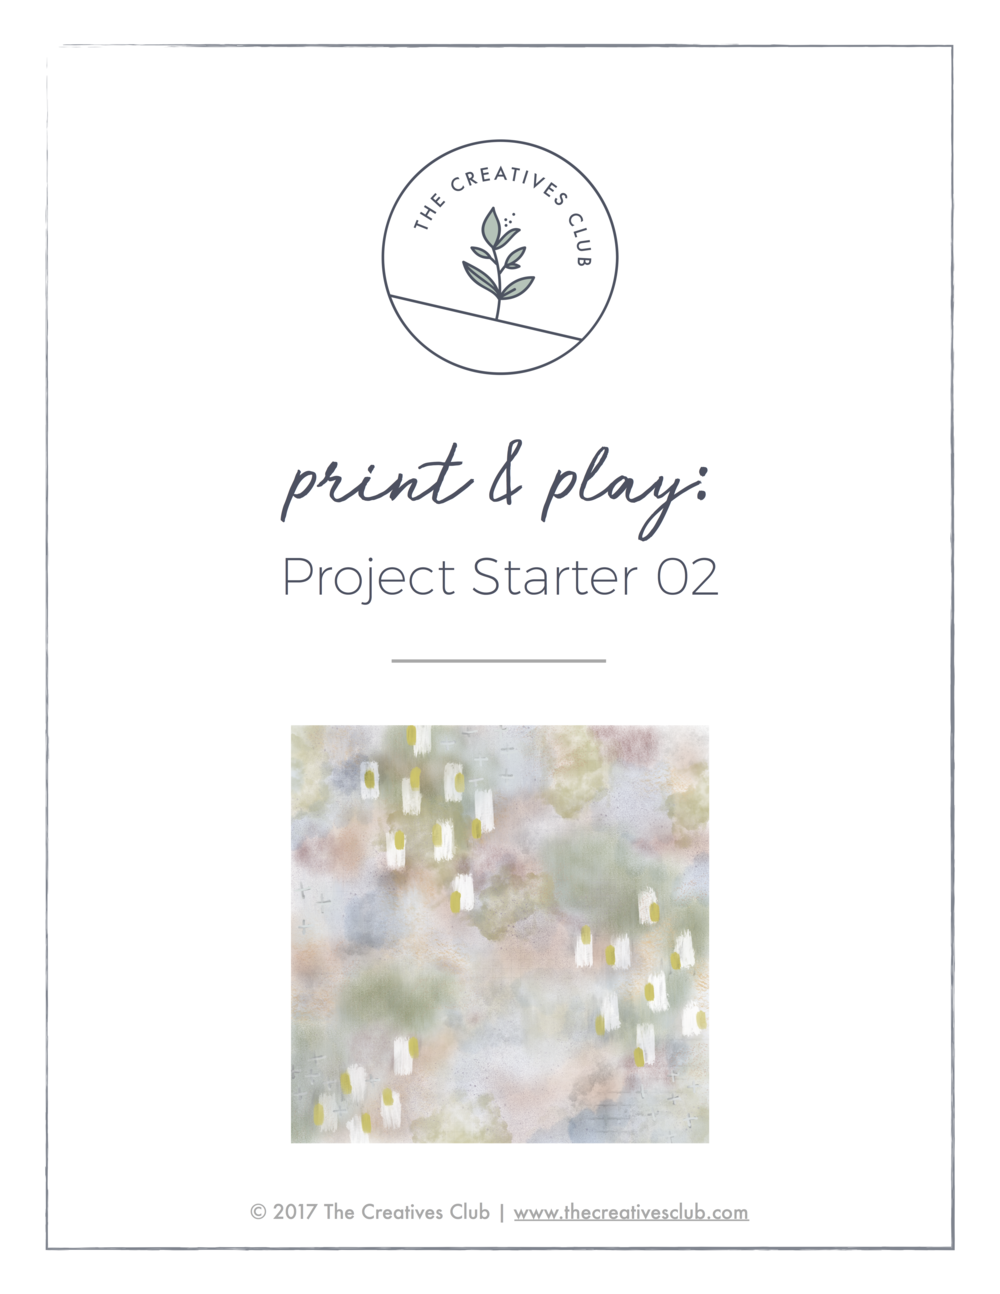 Project Starter 02 Thumbnail.png